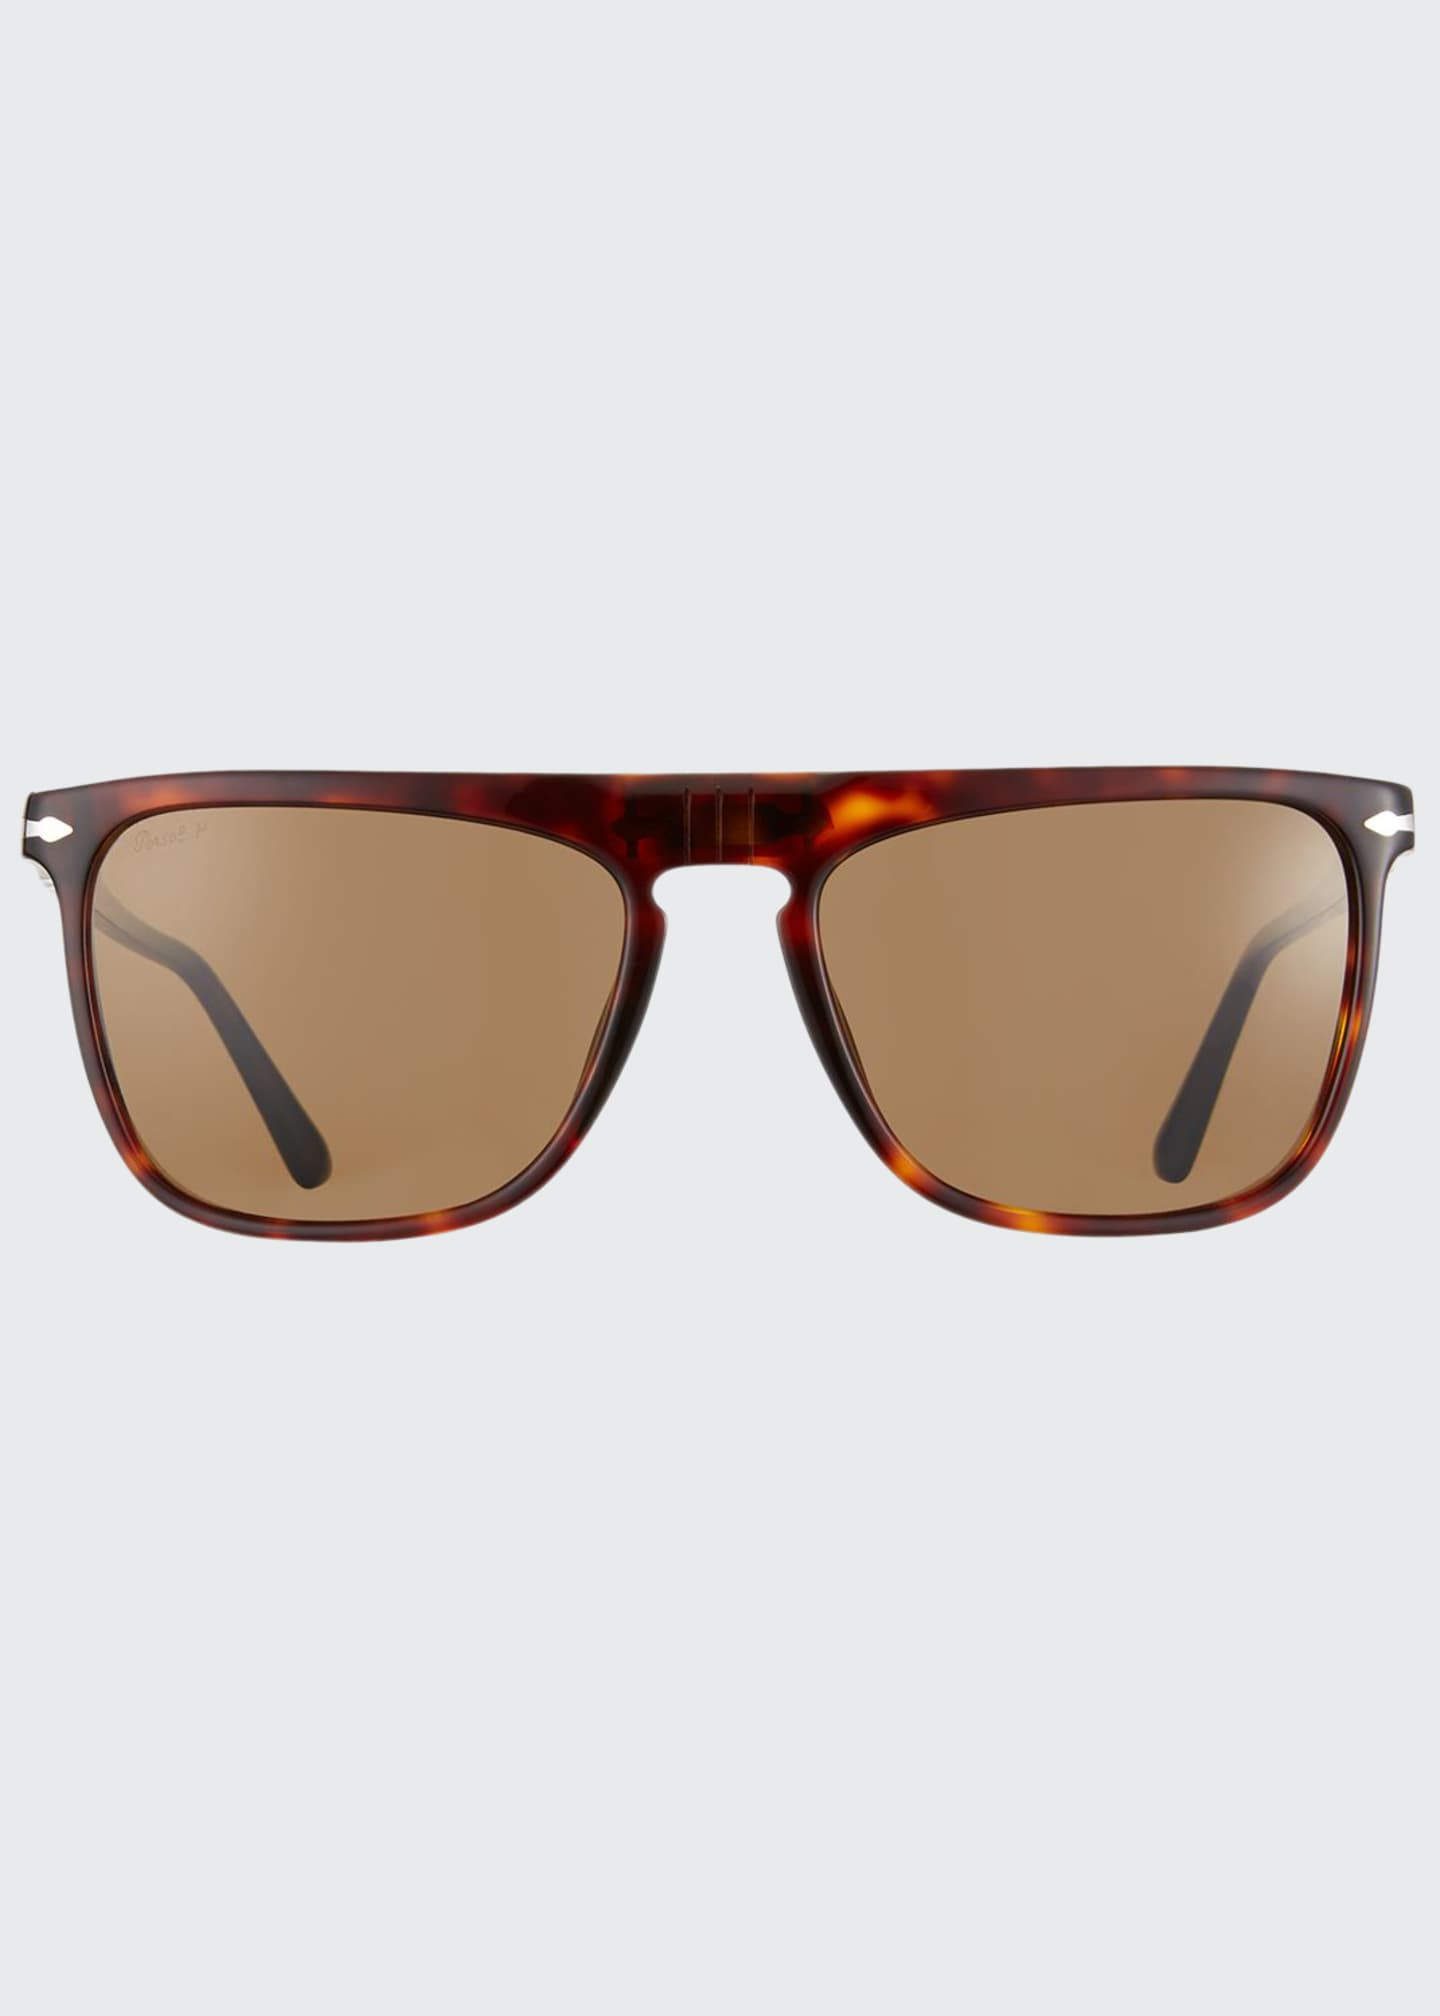 Men's Patterned Rectangle Sunglasses